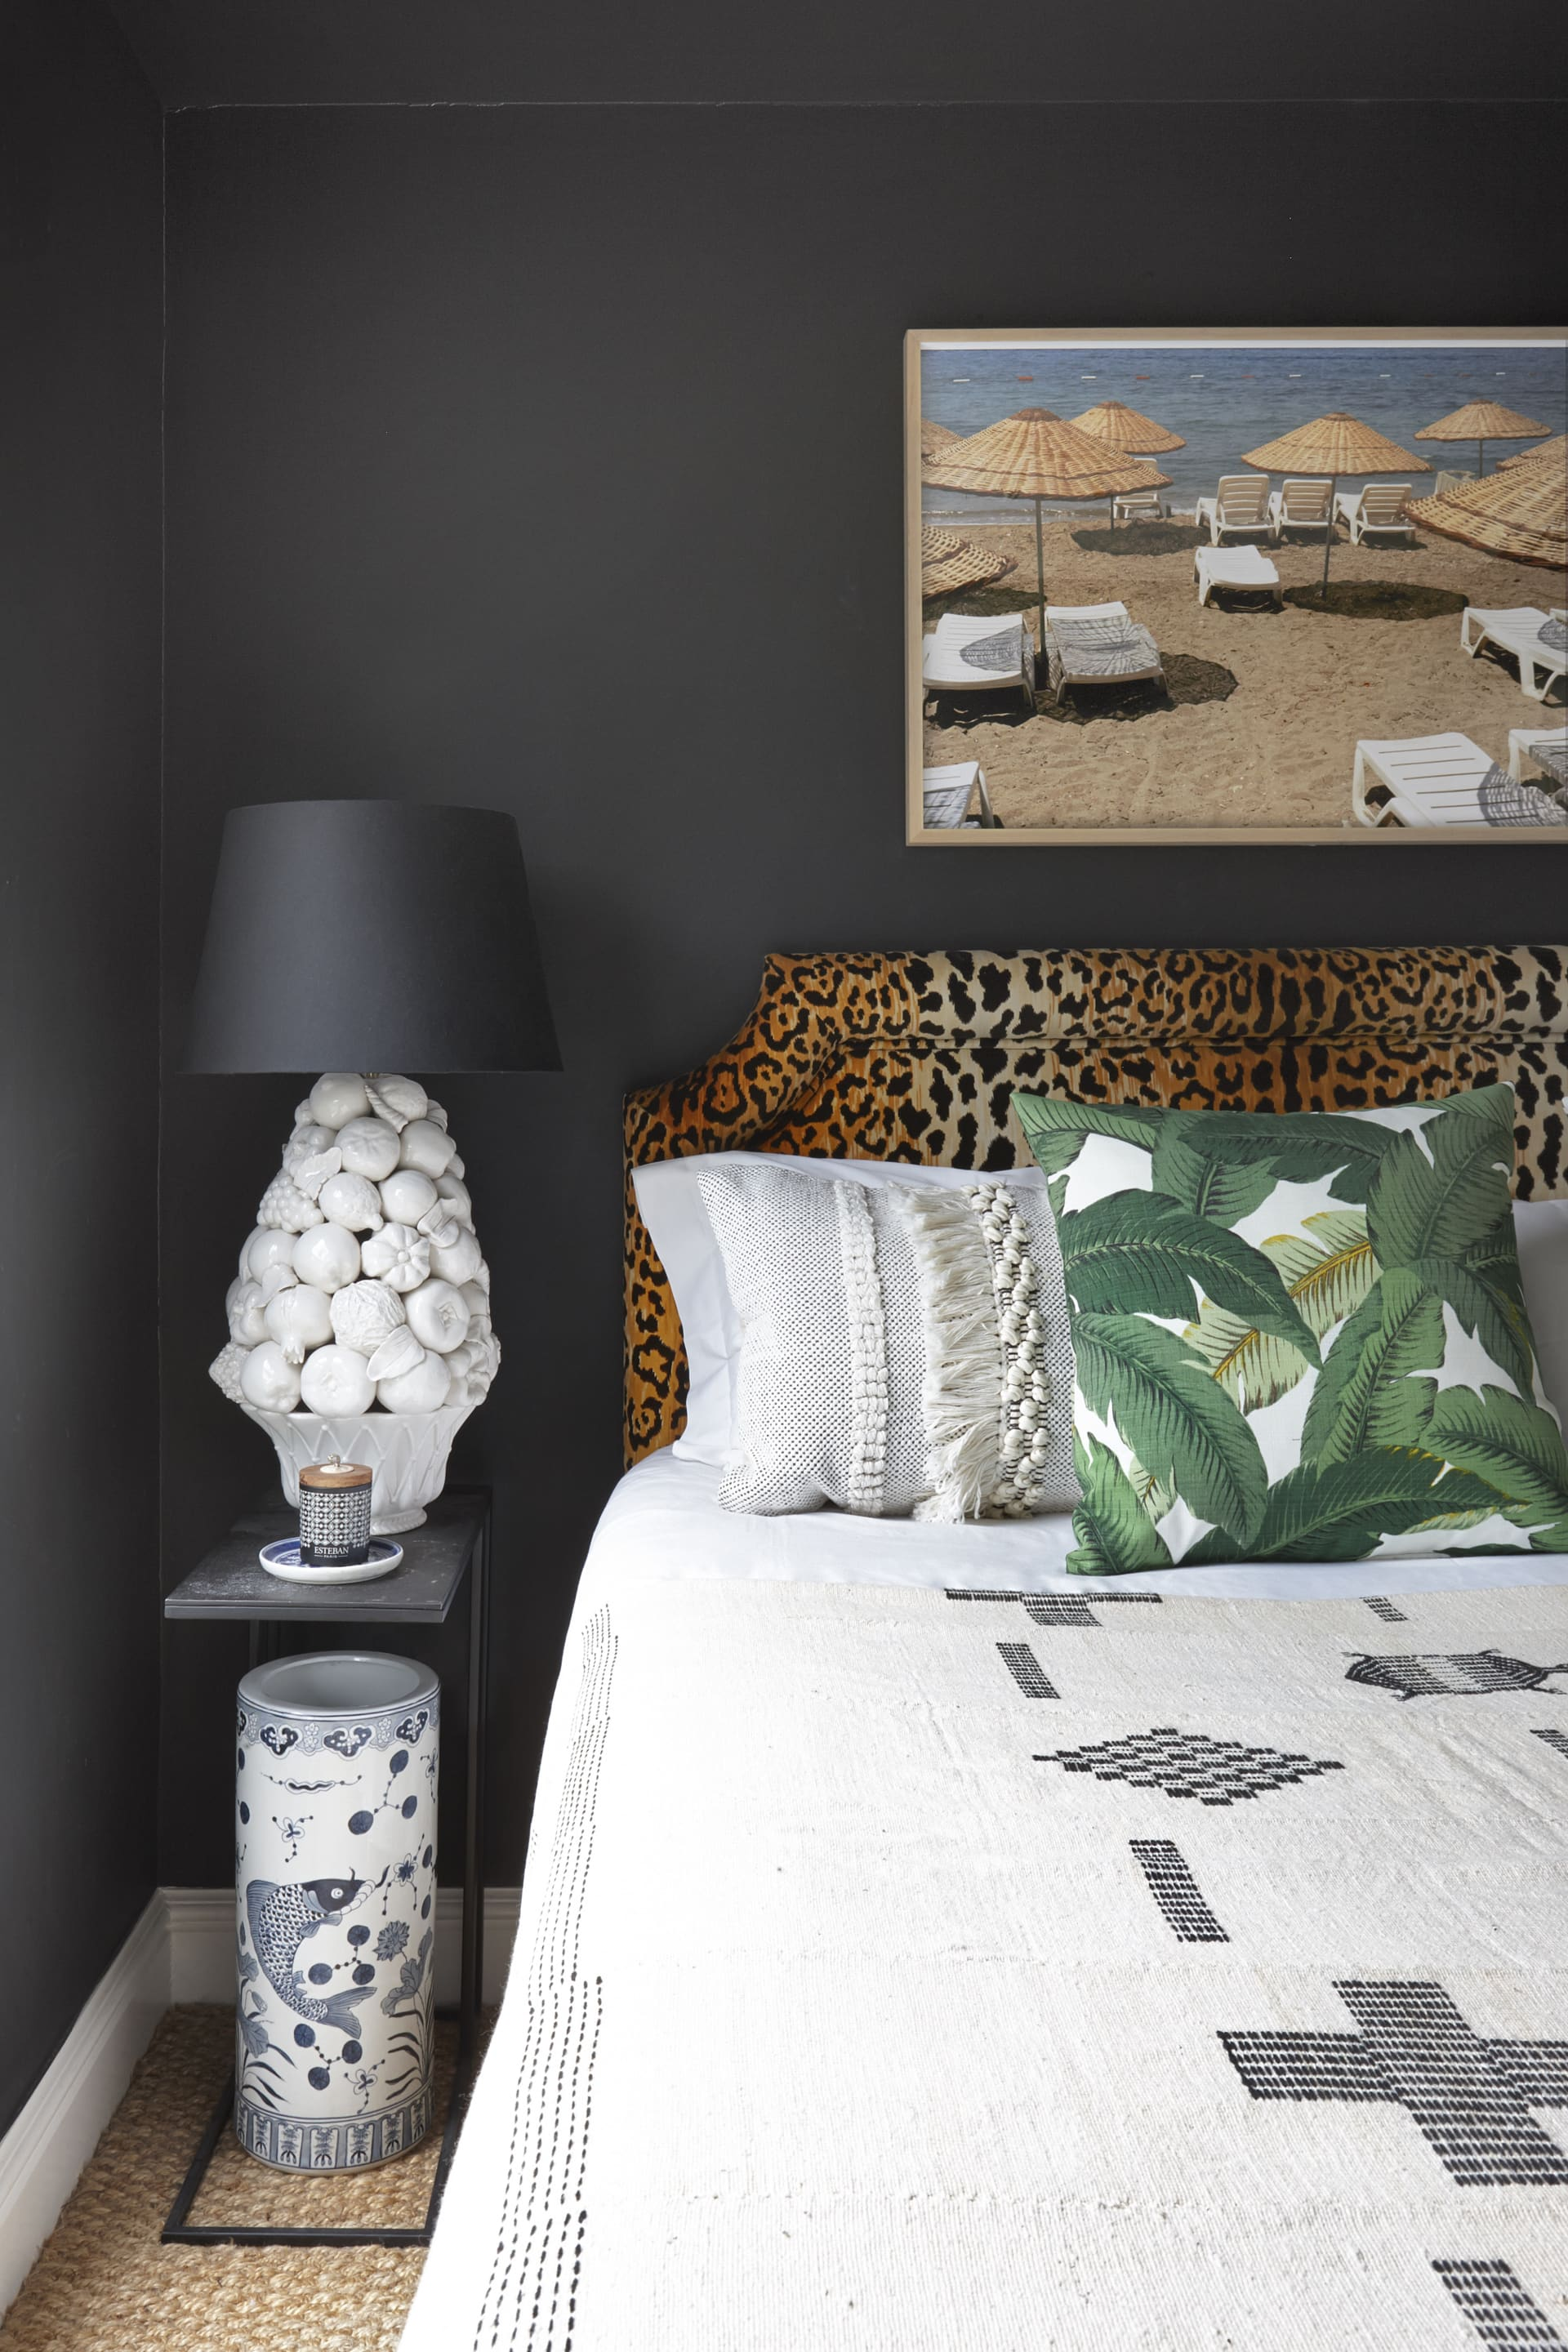 In the uniquely eclectic bedroom a framed photograph by Jen Jengo hangs on matt black walls above a leopard print headboard. © Micky Hoyle